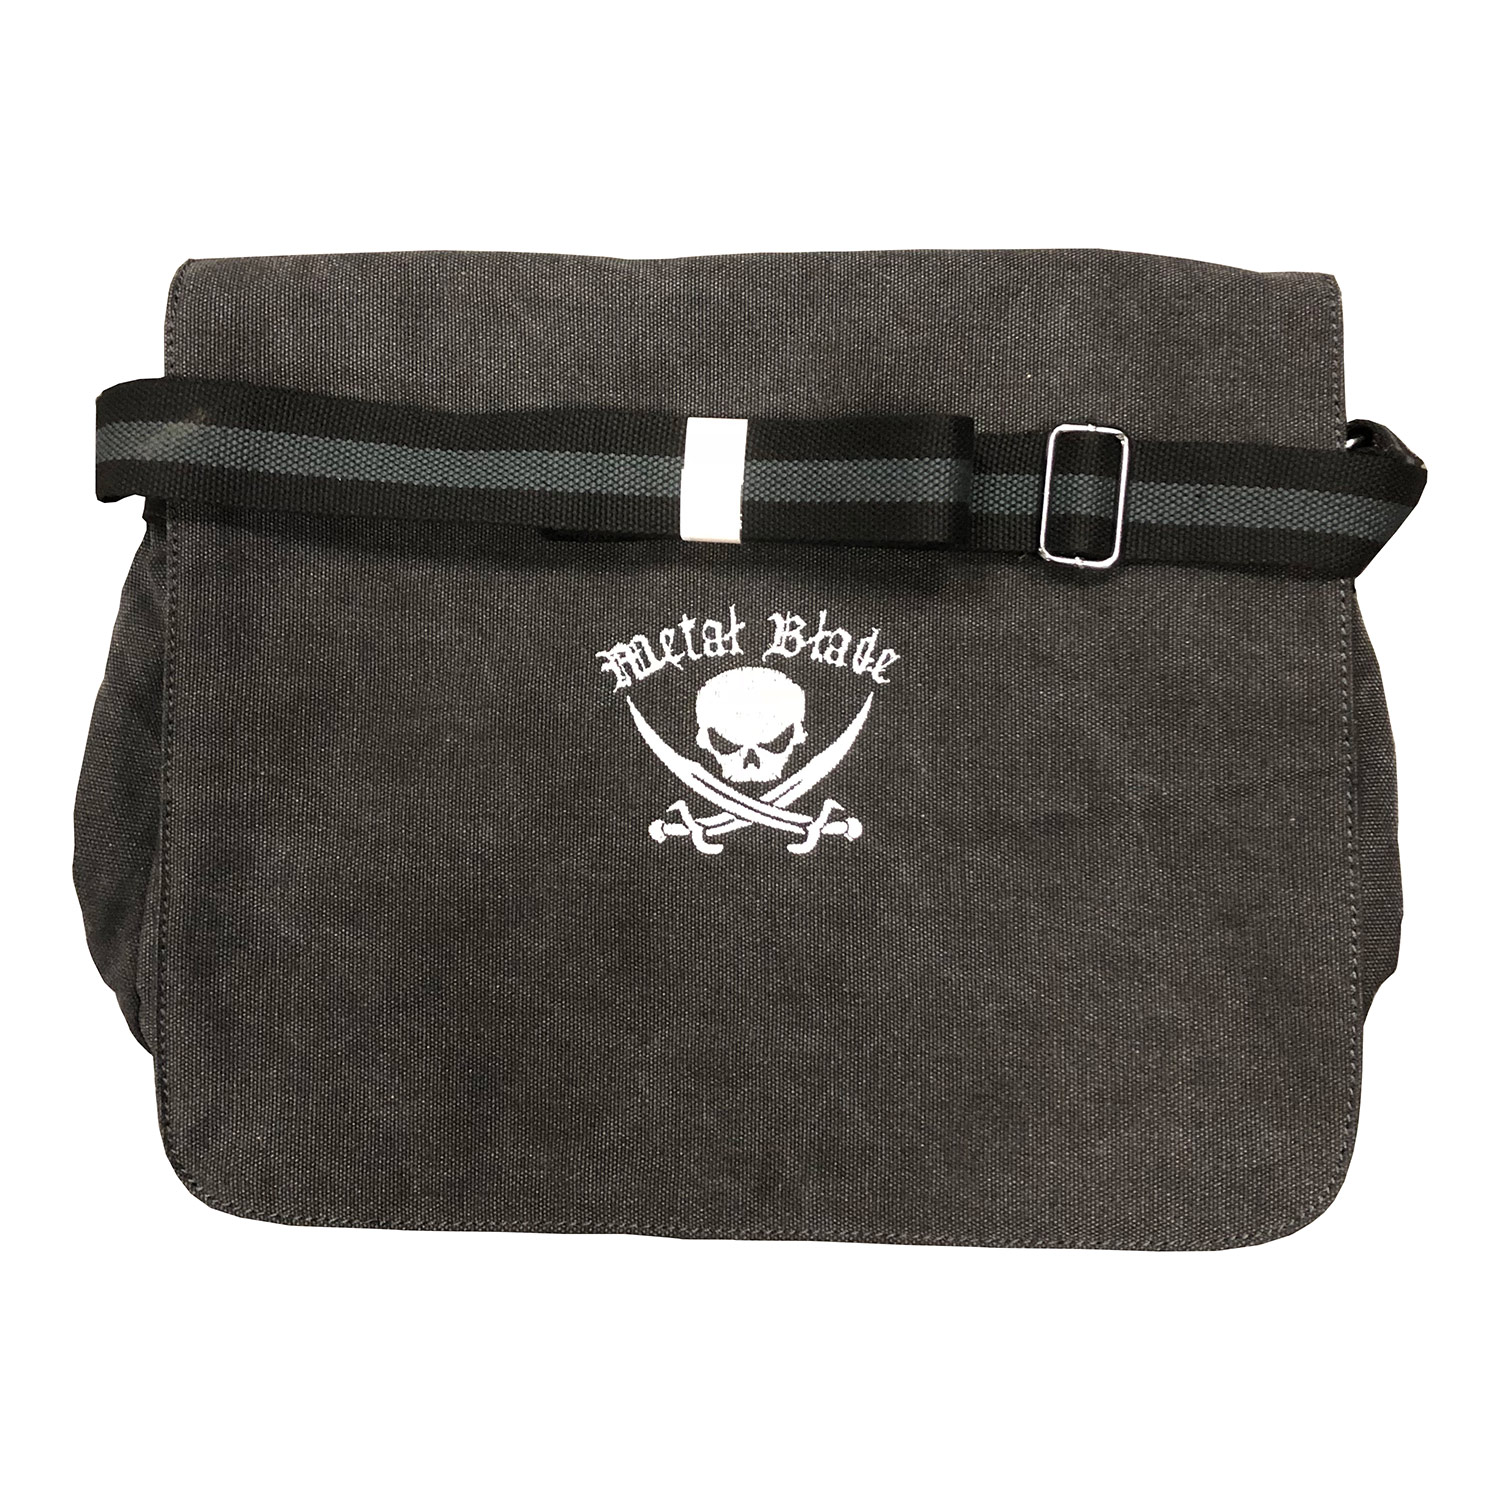 Pirate Logo (Canvas Messenger Bag)